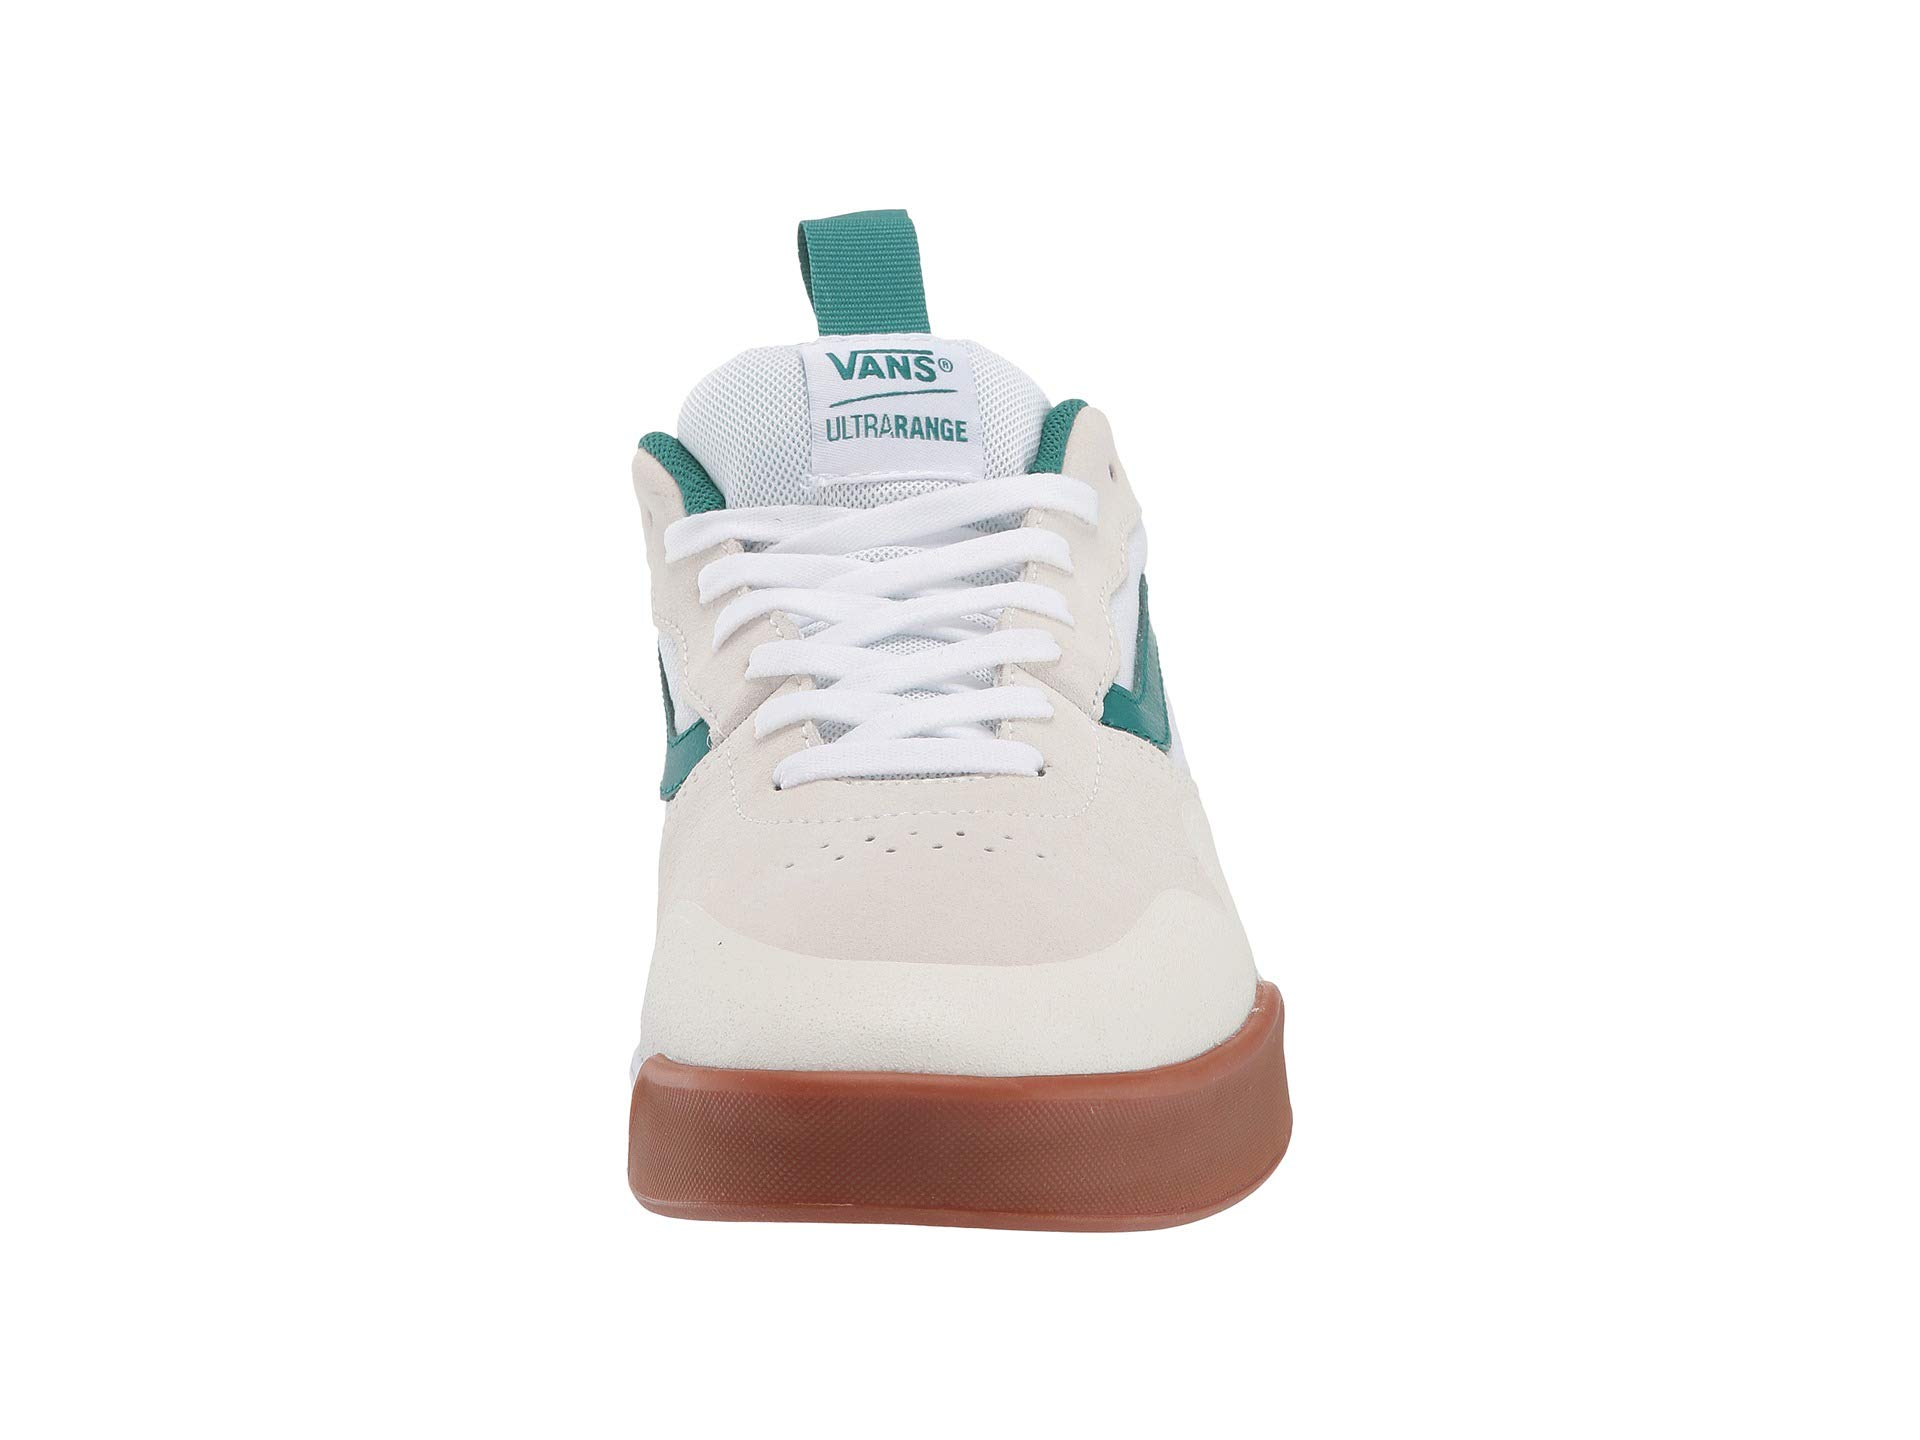 8febcc33cff Green Sneakers Shoes Pro Vans amp  Marshmallow quetzal 2 Ultrarange™  Athletic qCH1wXS